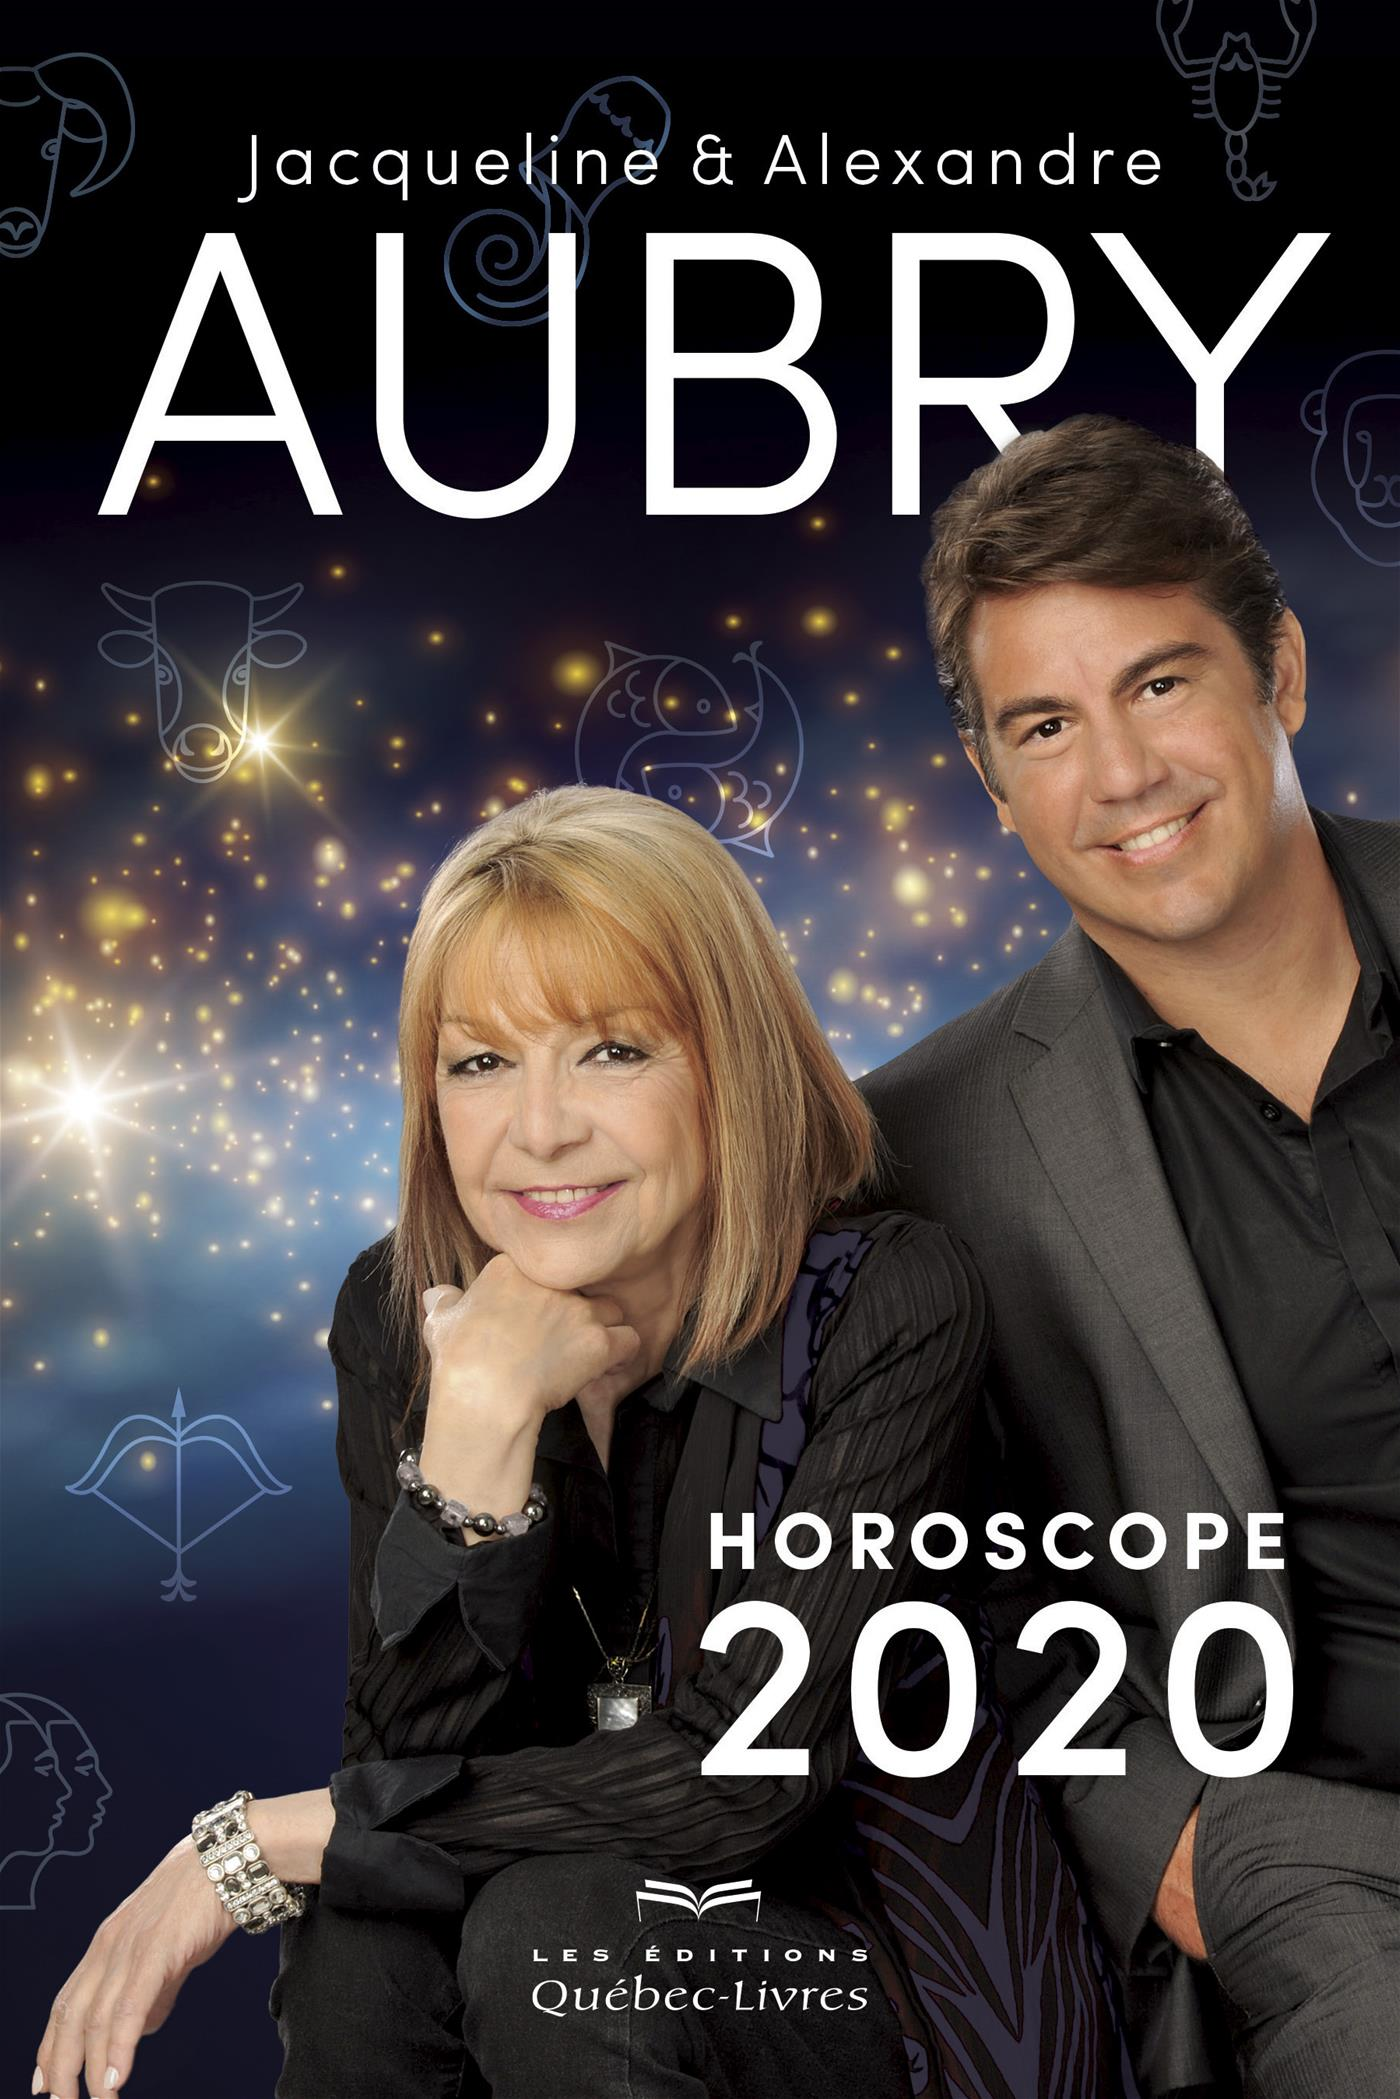 Horoscope 2020 - Aubry